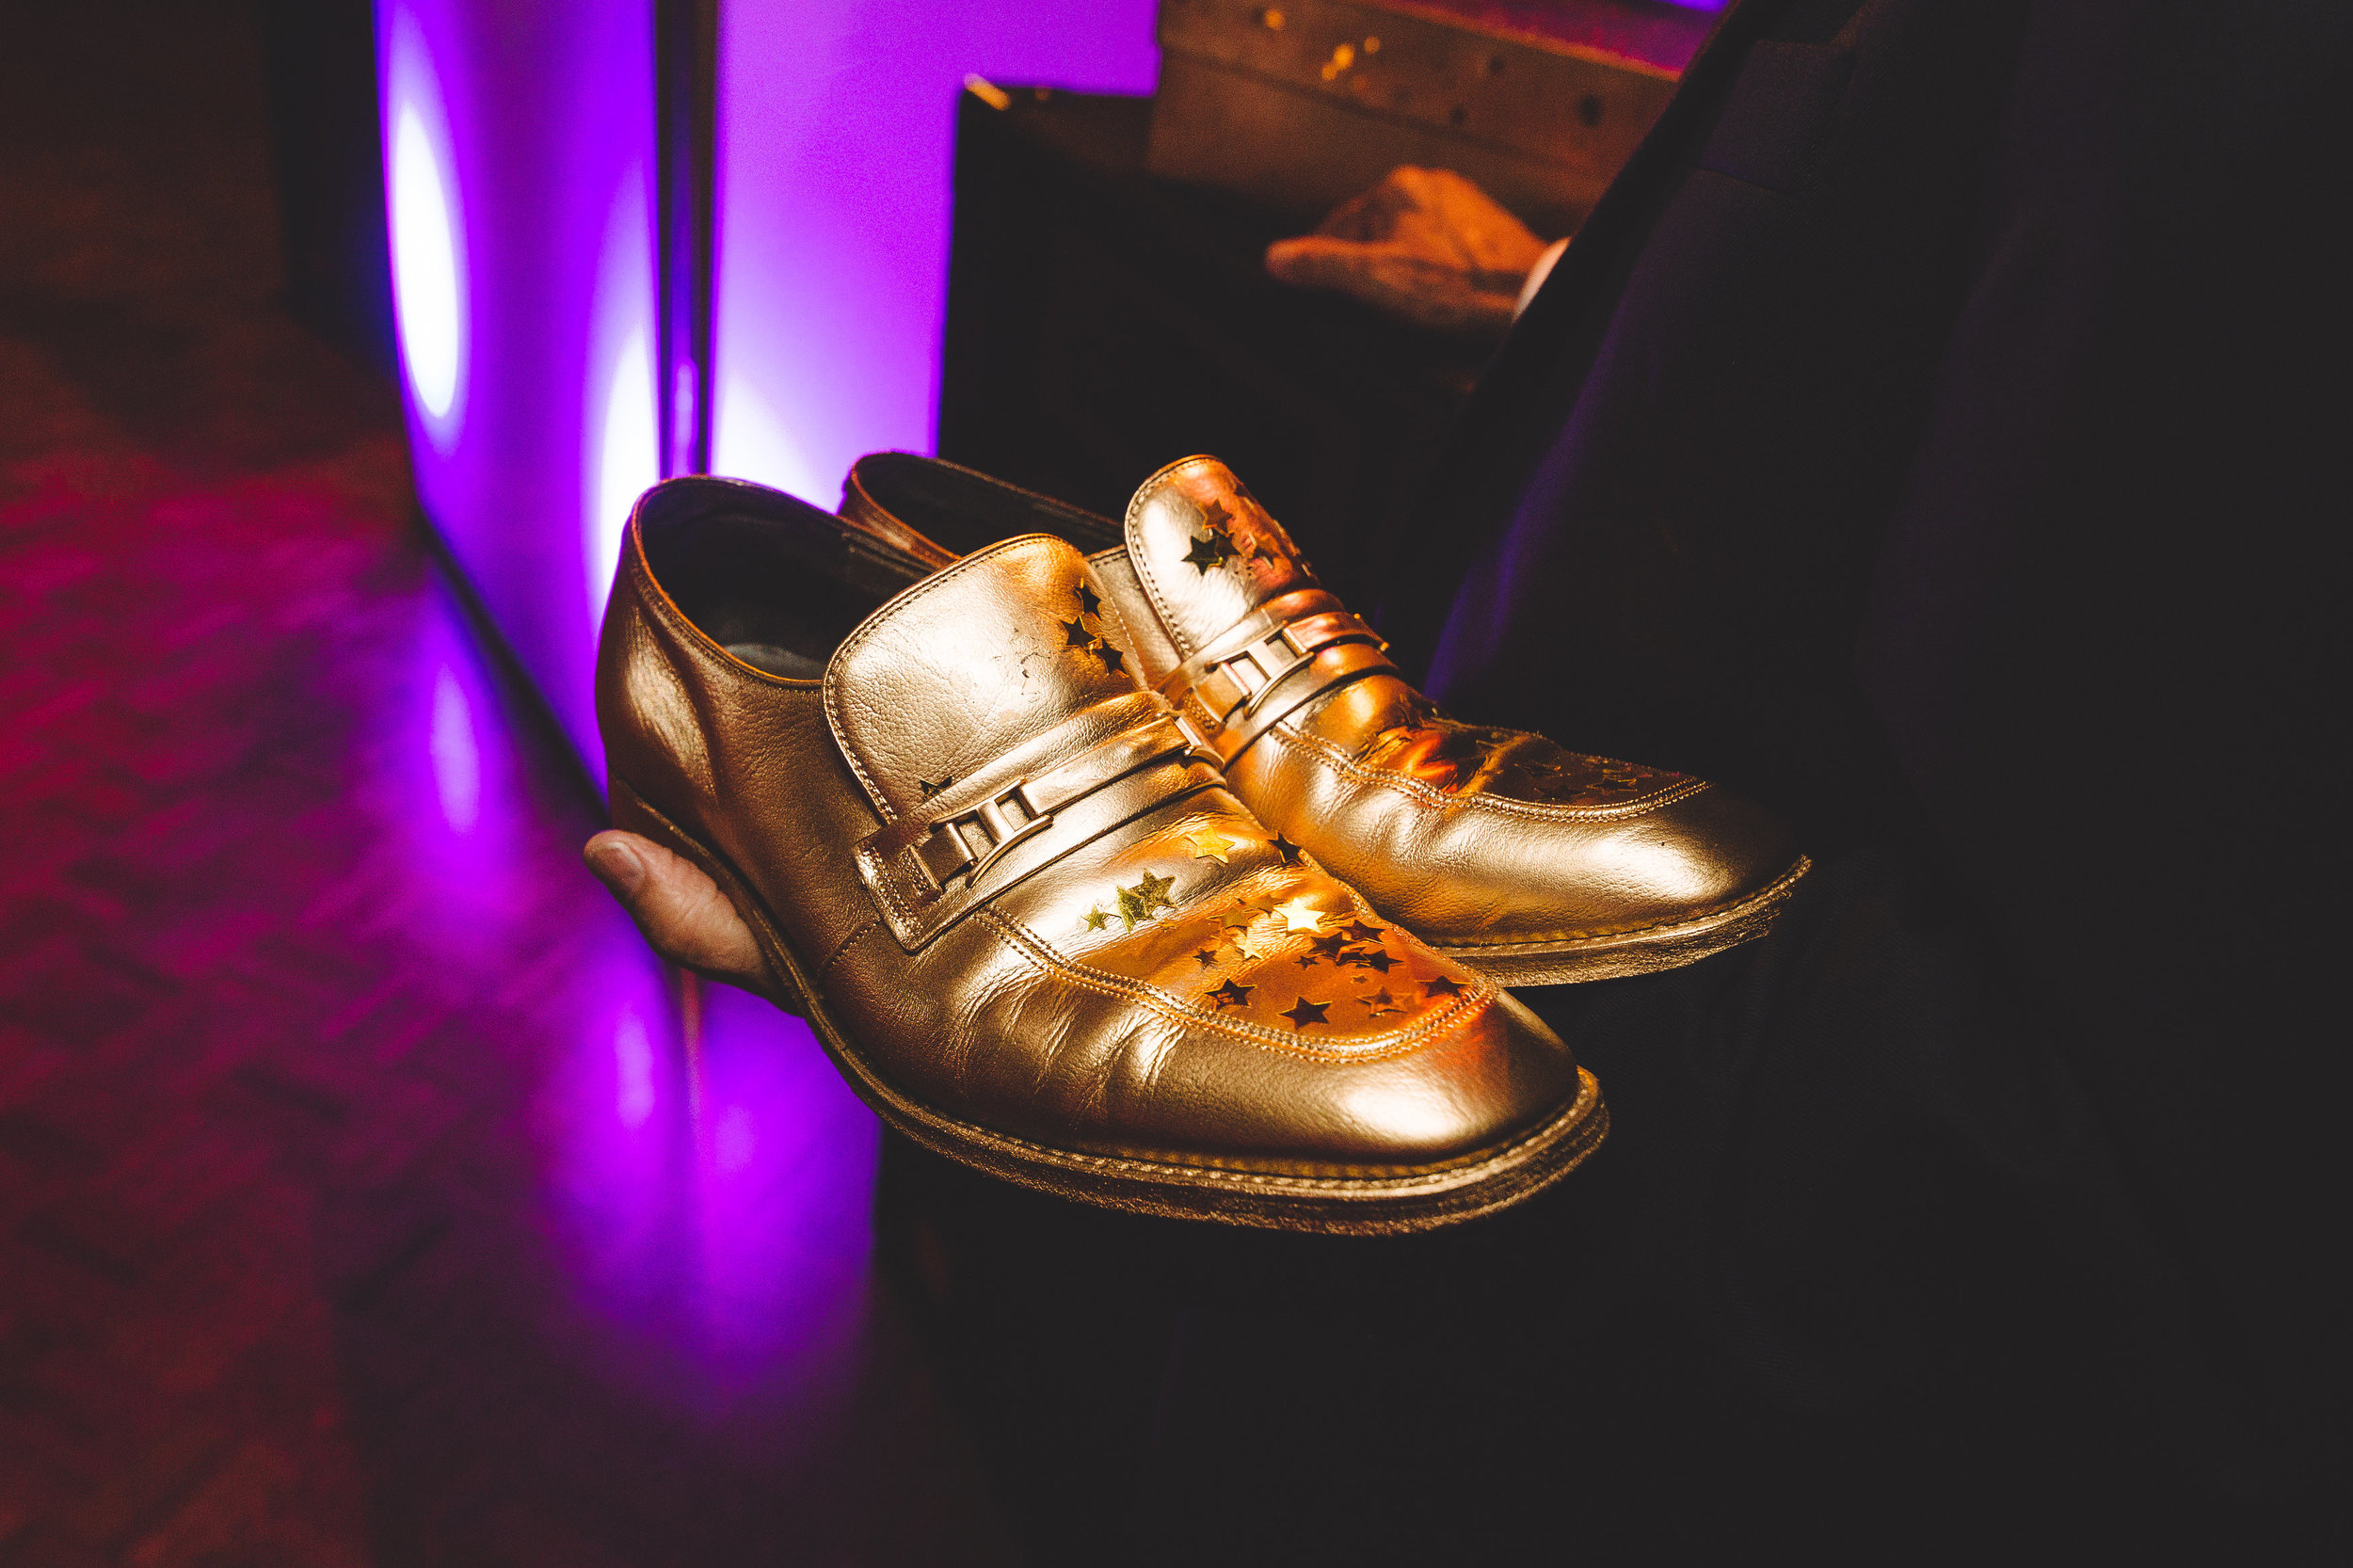 Gold_dance_shoes_at_wedding_reception